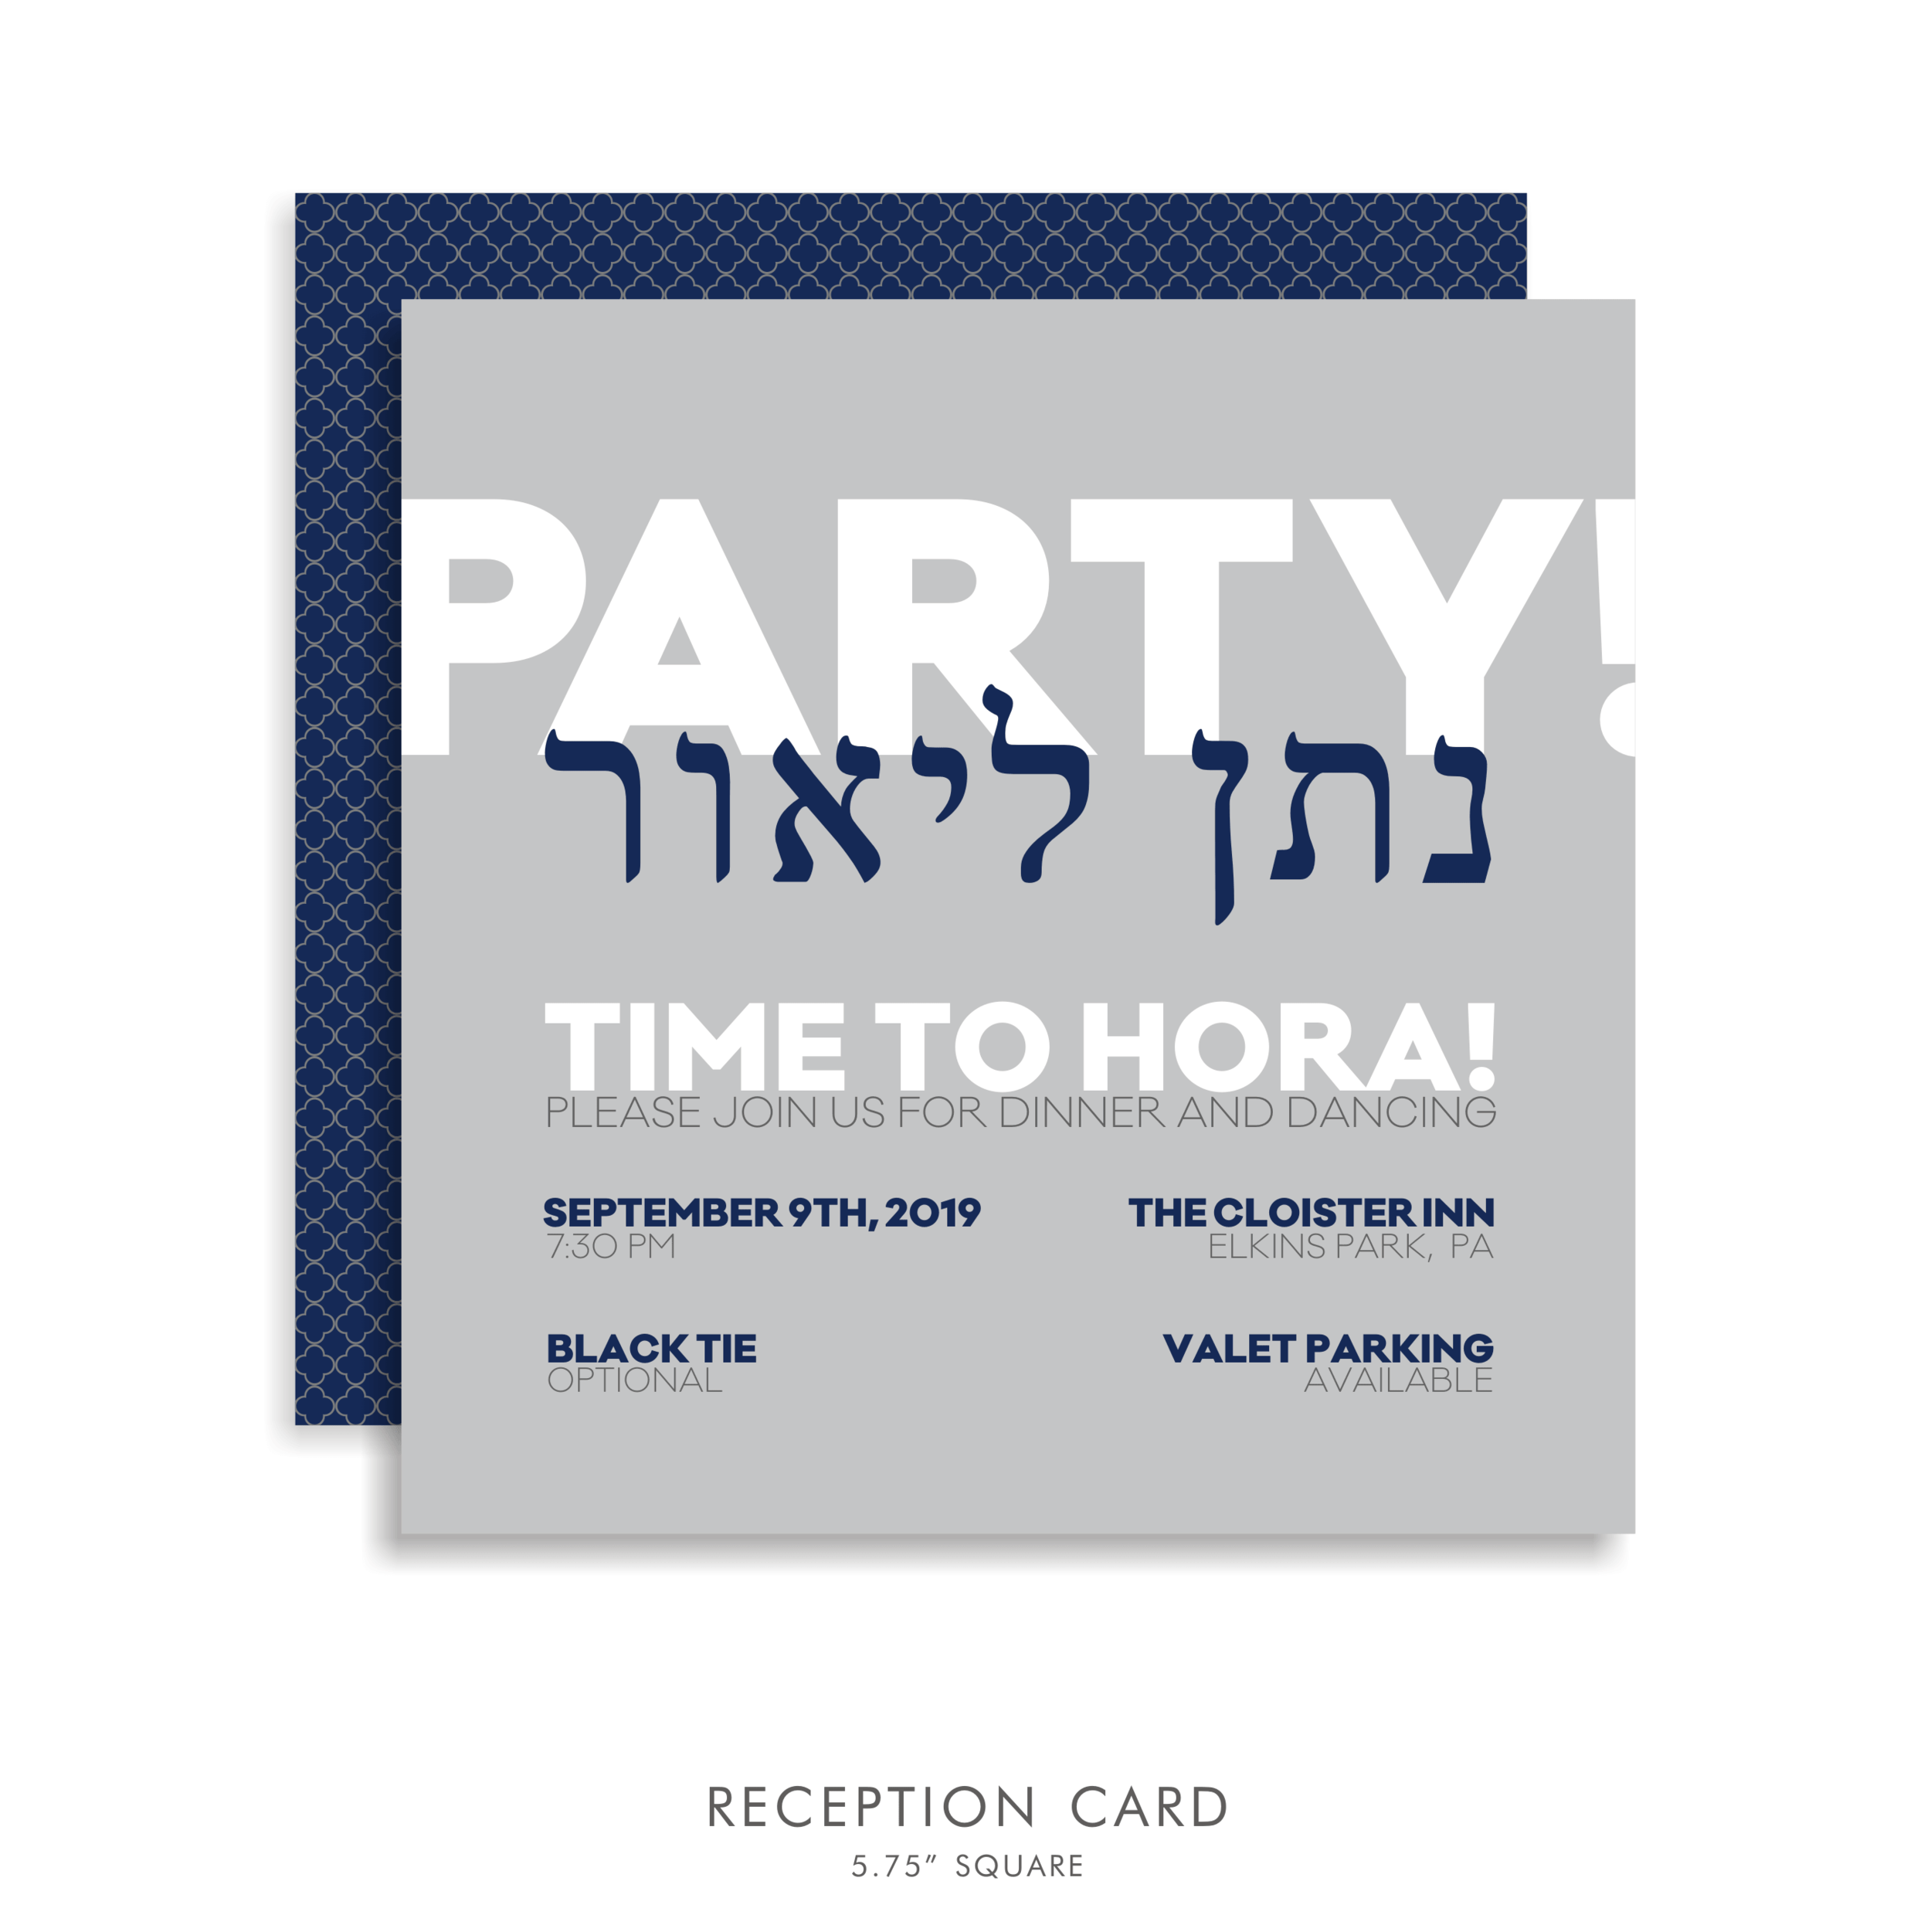 03 BAT MITZVAH INVITE SUITE 5263  RECEPTION CARD.png